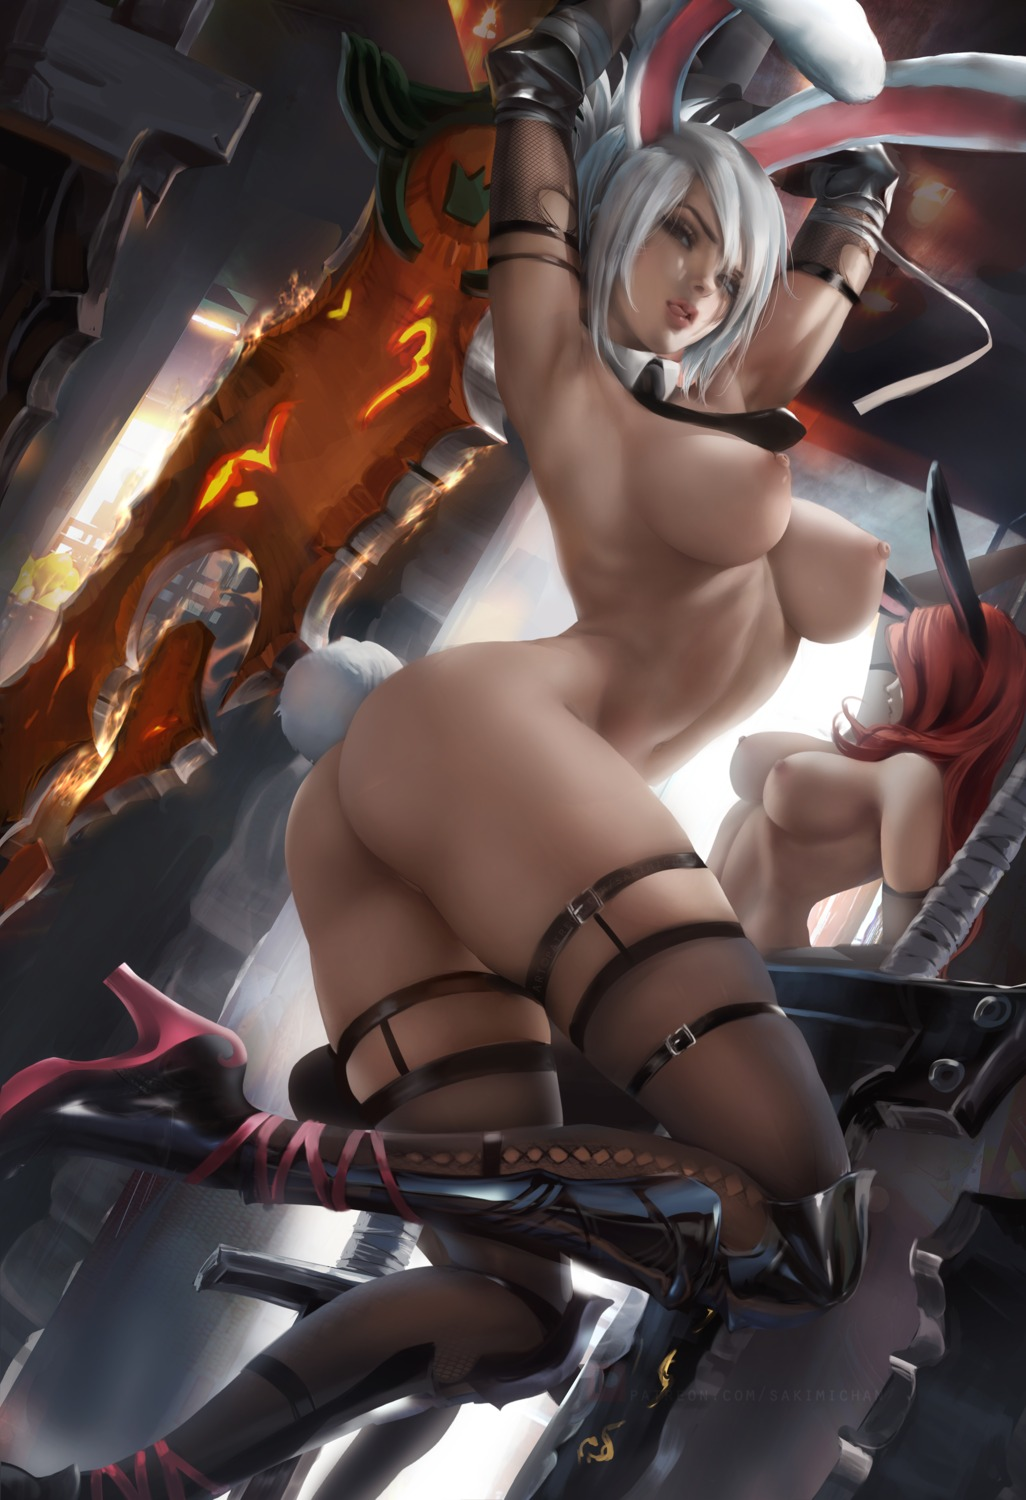 animal_ears ass bunny_ears garter heels league_of_legends miss_fortune naked nipples riven_(league_of_legends) sakimichan stockings sword tail thighhighs